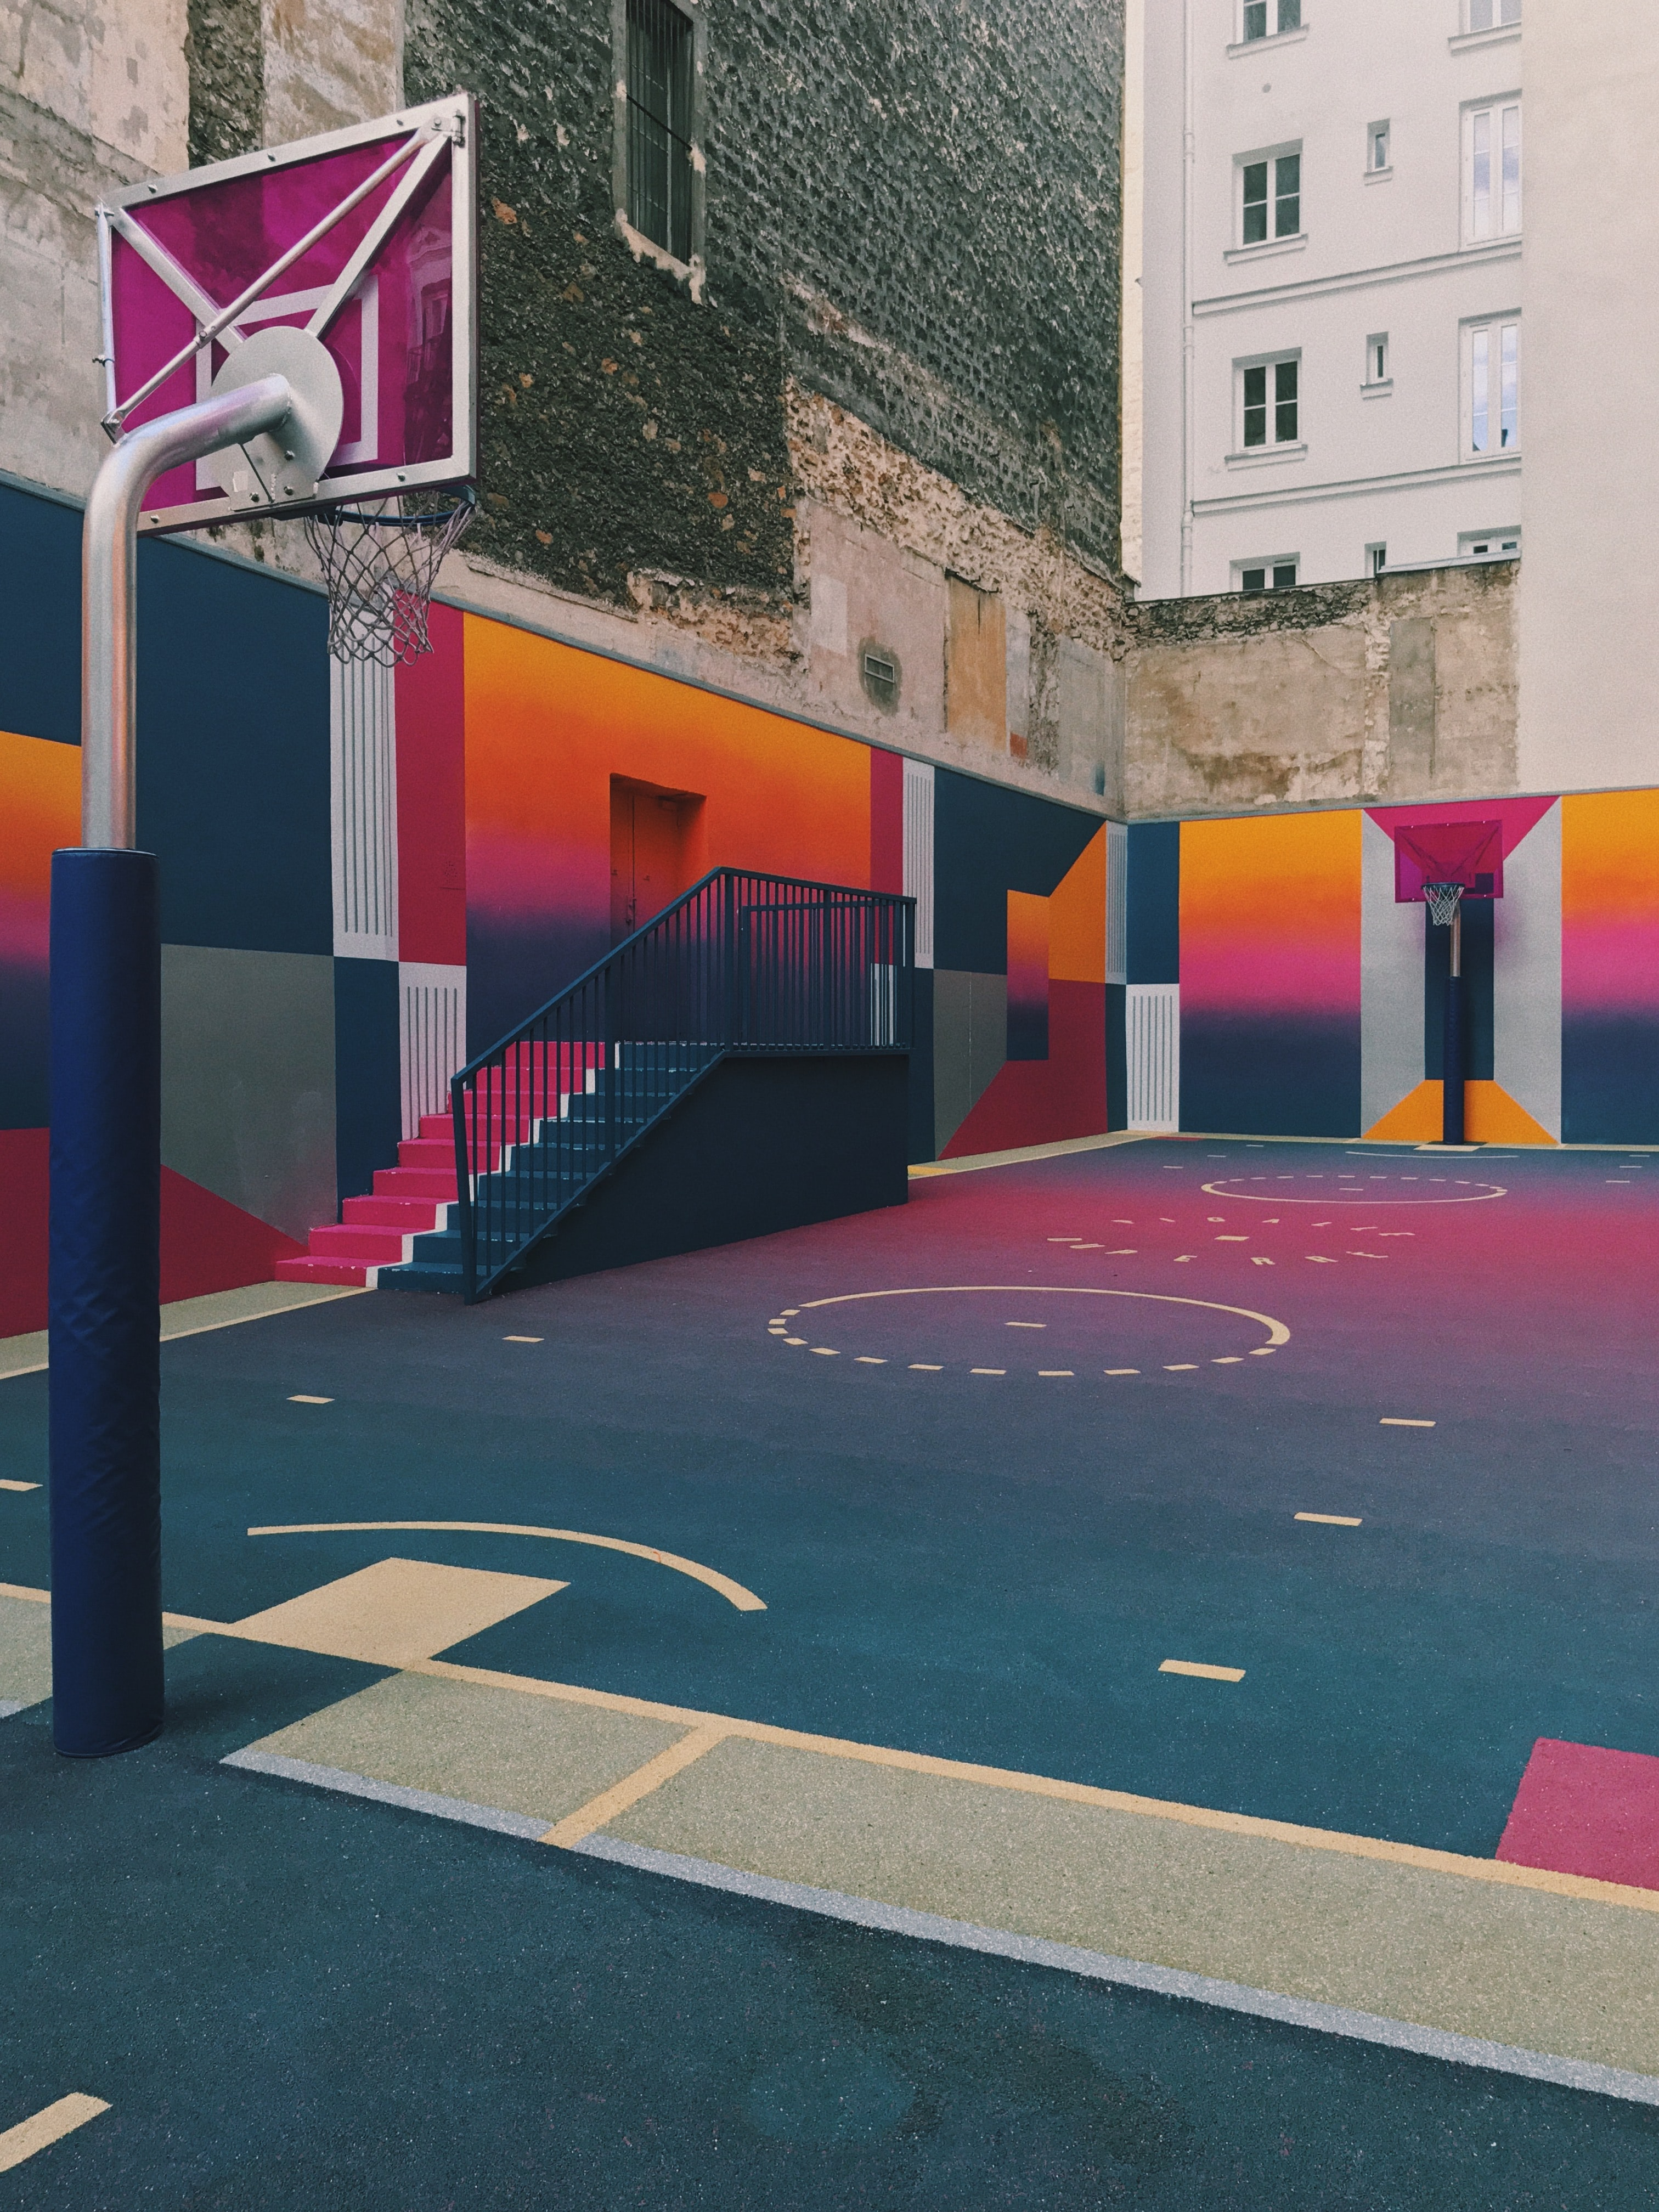 Urban basketball court with colorful graffiti on walls and floor, Сен Жорж, Париж, Иль-де-Франс, Франция